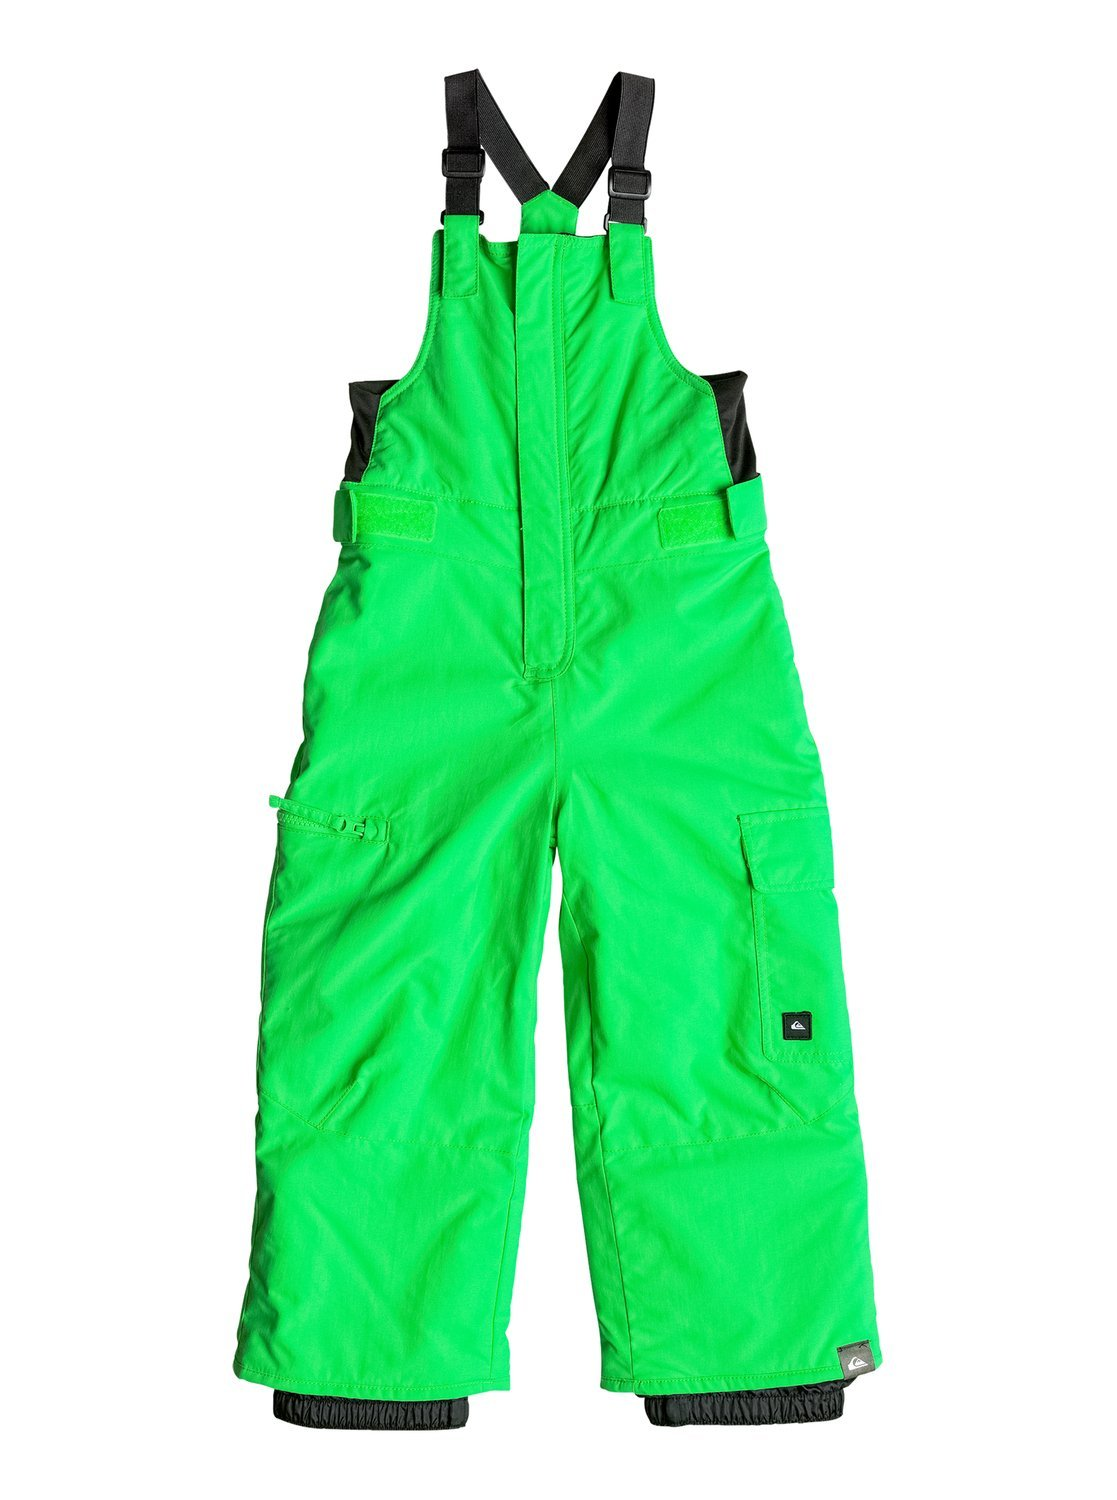 QUIKSILVER BOOGIE YOUTH BIB